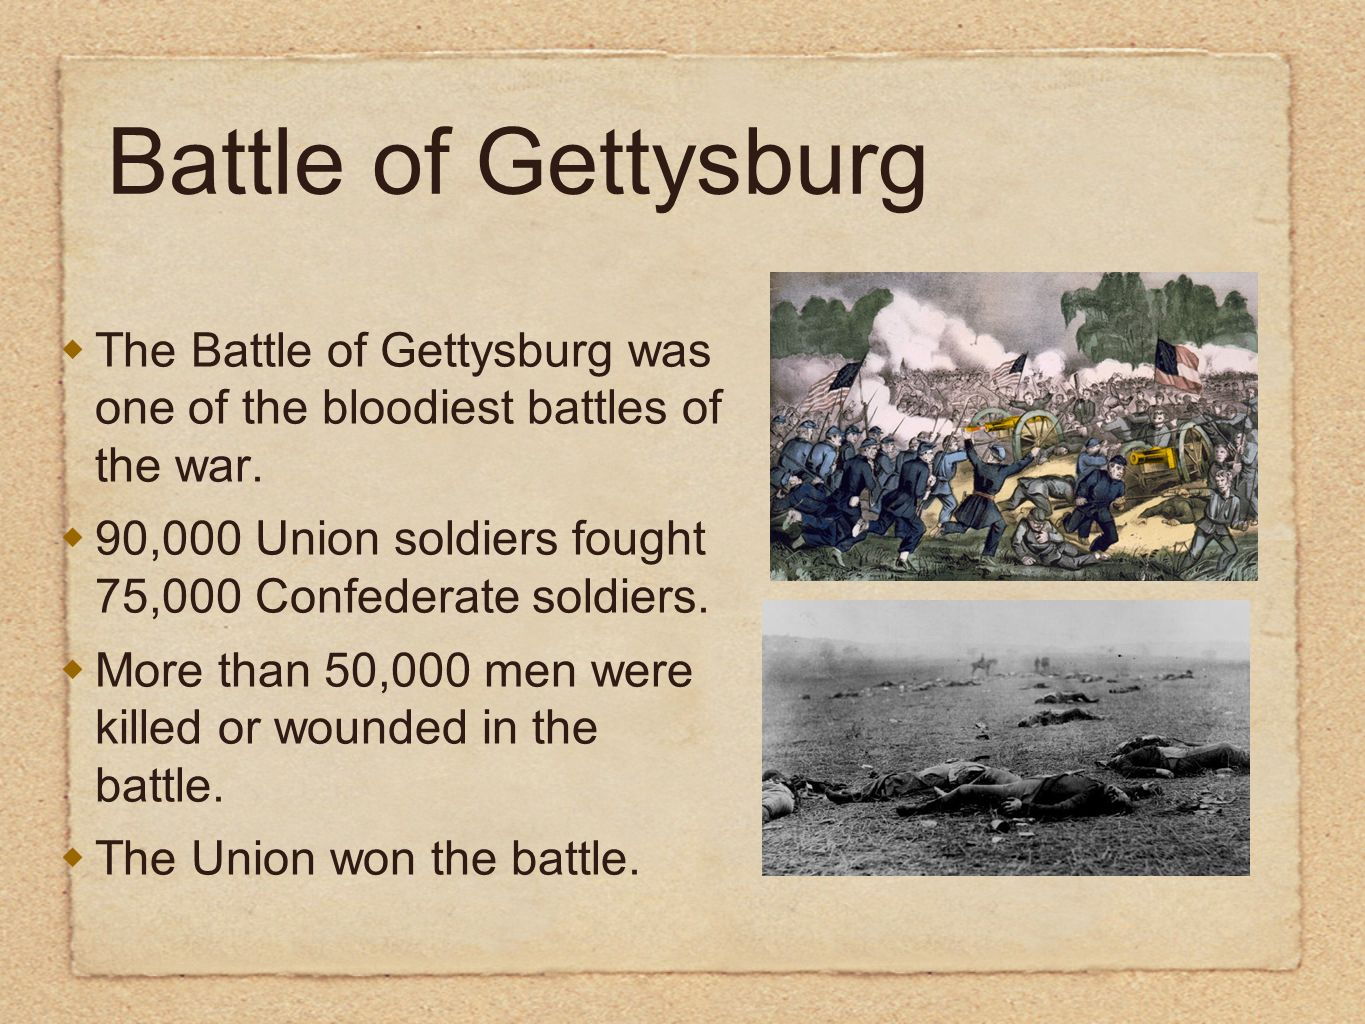 The Battle of Gettysburg was one of the bloodiest battles of the war. 90,000 Union soldiers fought 75,000 Confederate soldiers. More than 50,000 men w